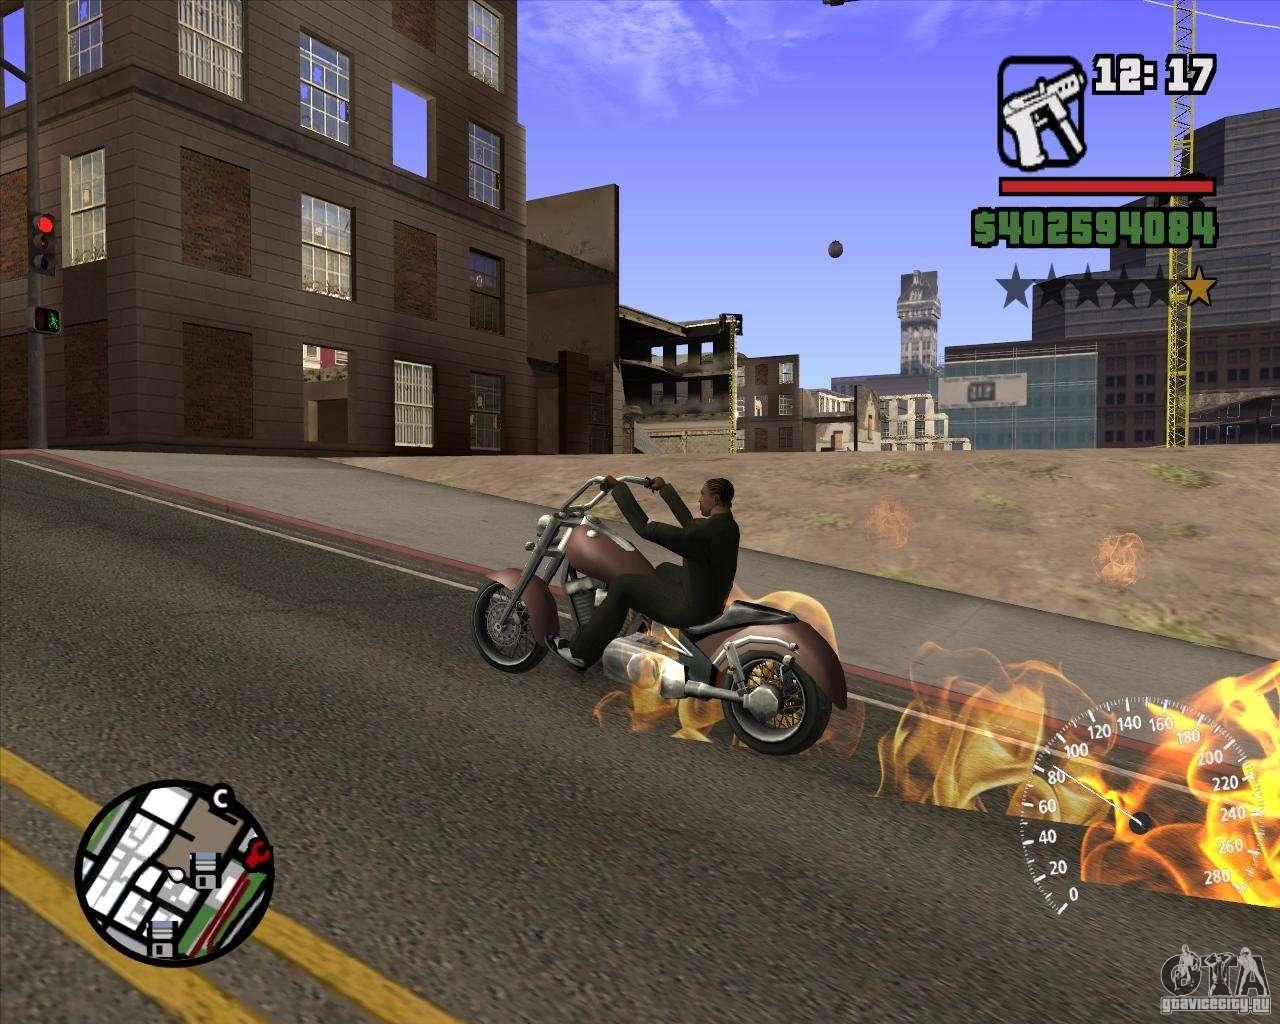 To activate, enter the GHOSTRIDER. You must be on the bike FREEWAY ...